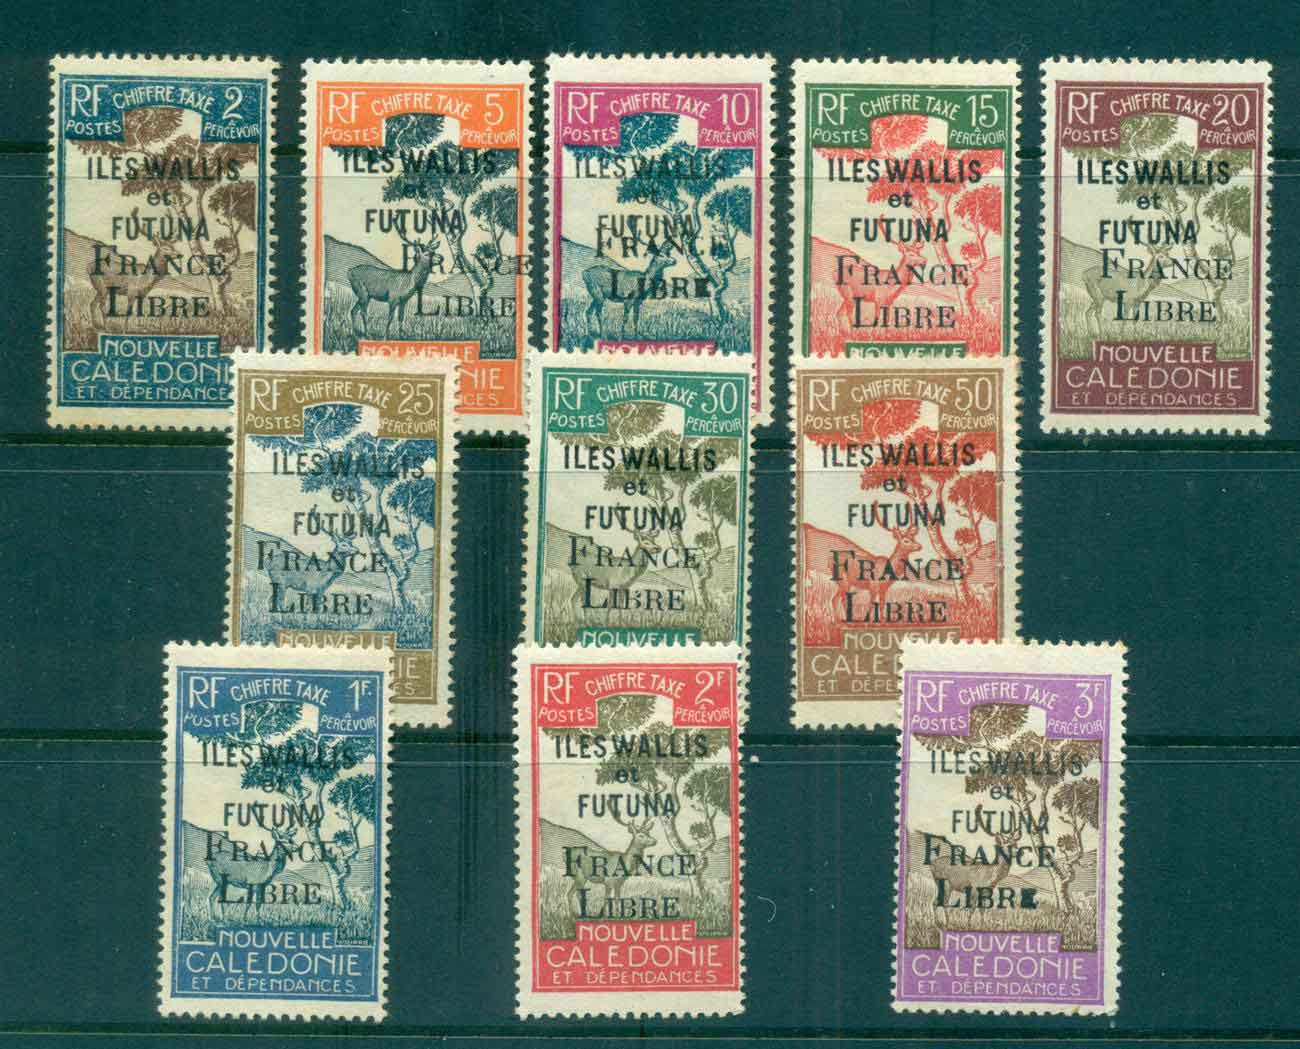 Wallis & Futuna 1943 Postage Dues Opt France Libre Asst to 3f (11/13, no 4c, 60c) MLH lot49495